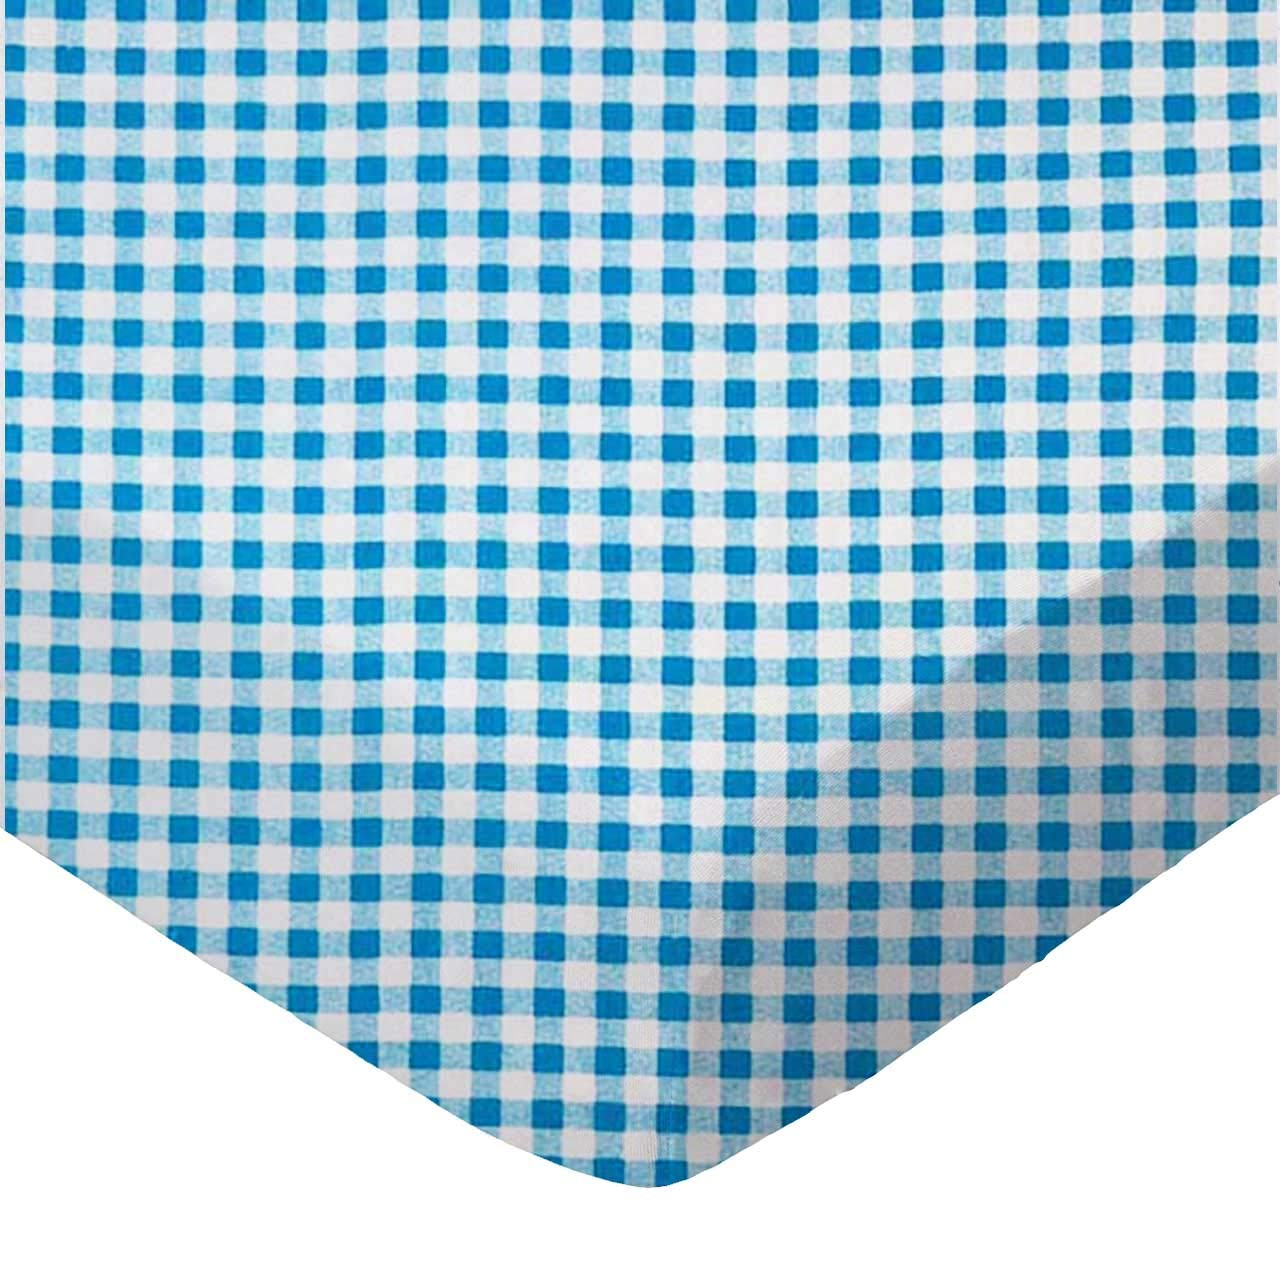 SheetWorld Fitted Portable / Mini Crib Sheet - Turquoise Gingham Check - Made In USA